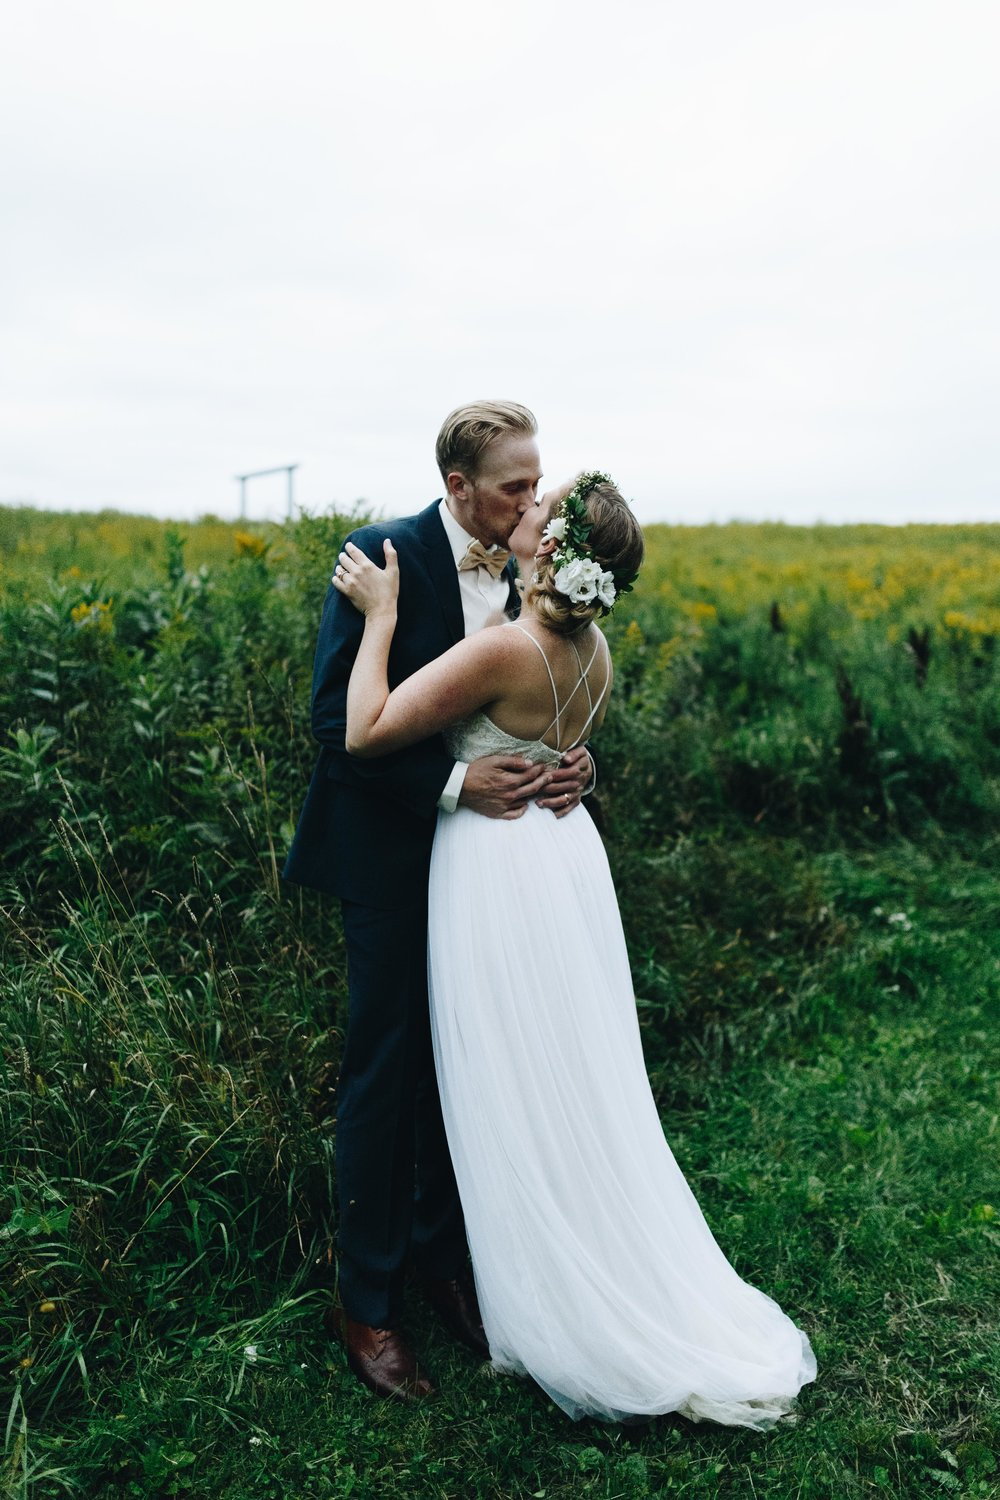 keely-and-nick-blissful-enchanted-barn-wedding-blog-223.jpg